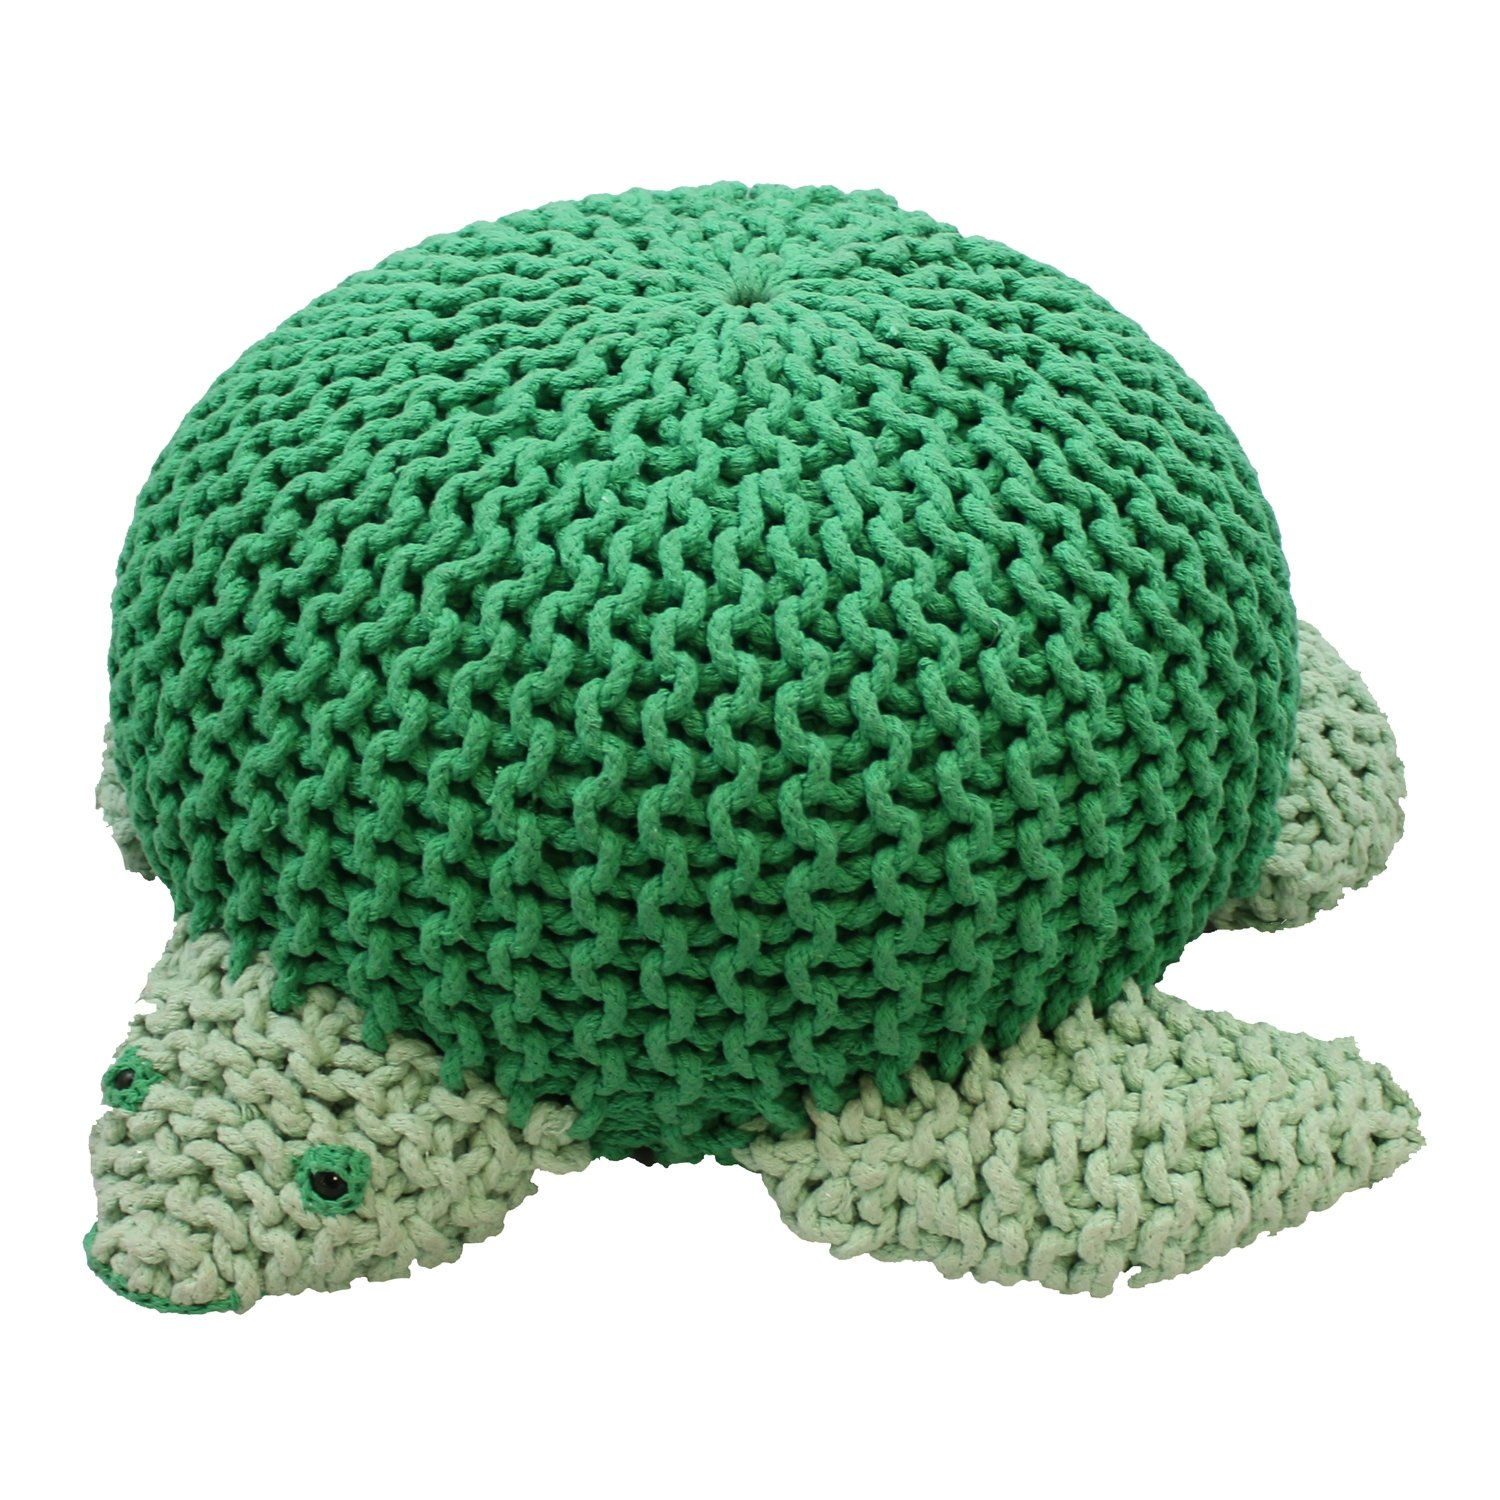 Oversized Knitted Sea Turtle Pouf Stool Seat Playroom